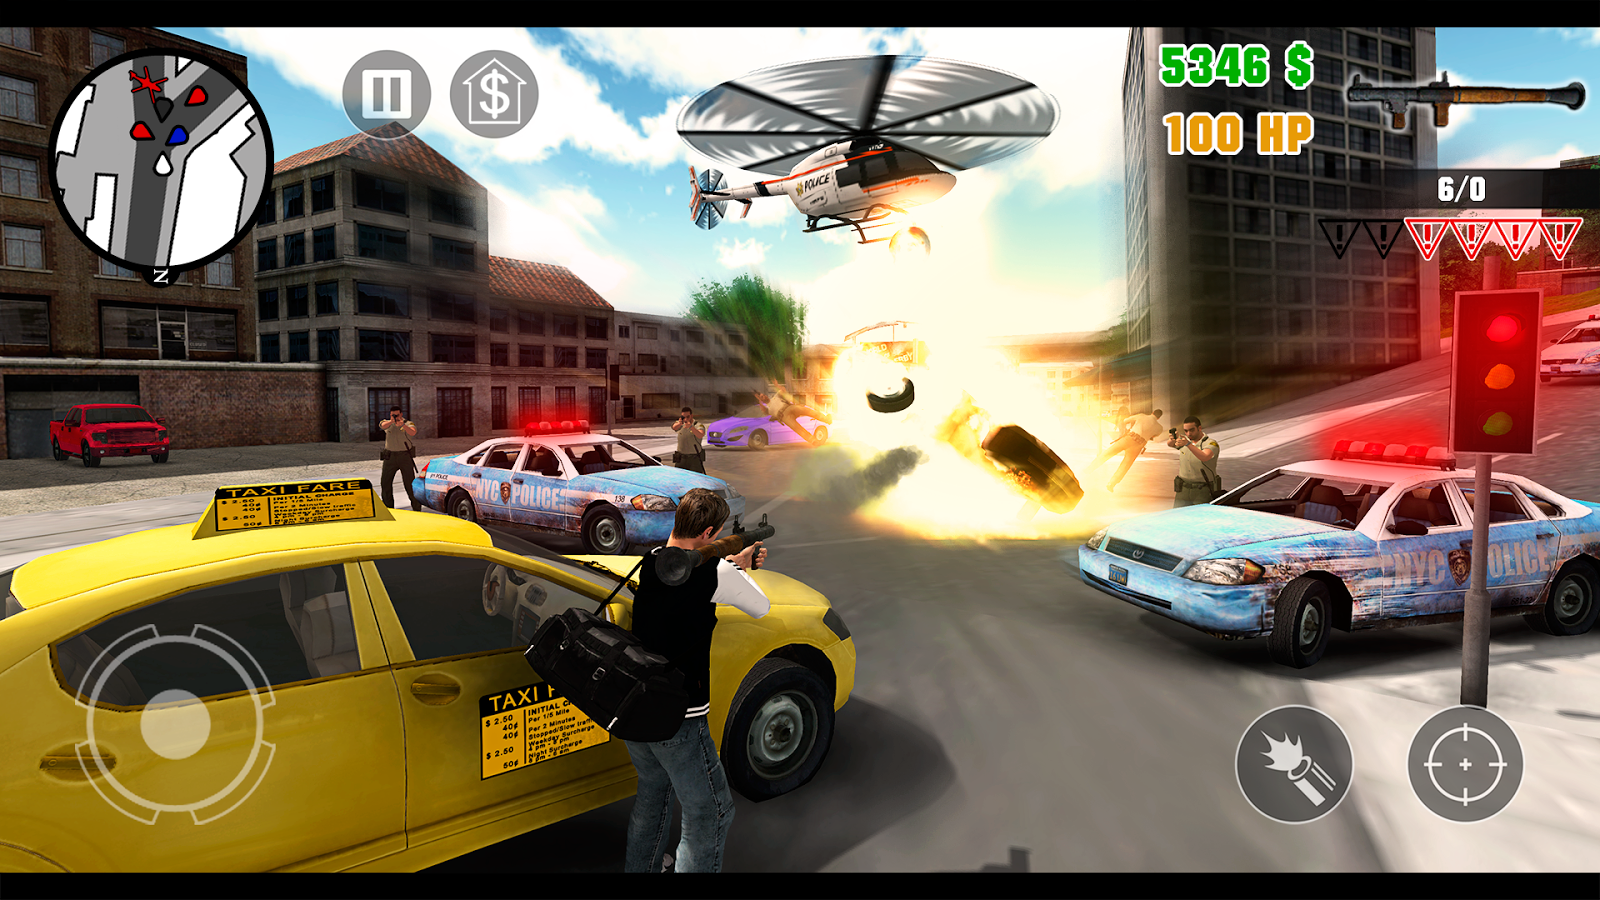 Clash of Crime San Andreas PRO 1 0 1 APK Download - Android